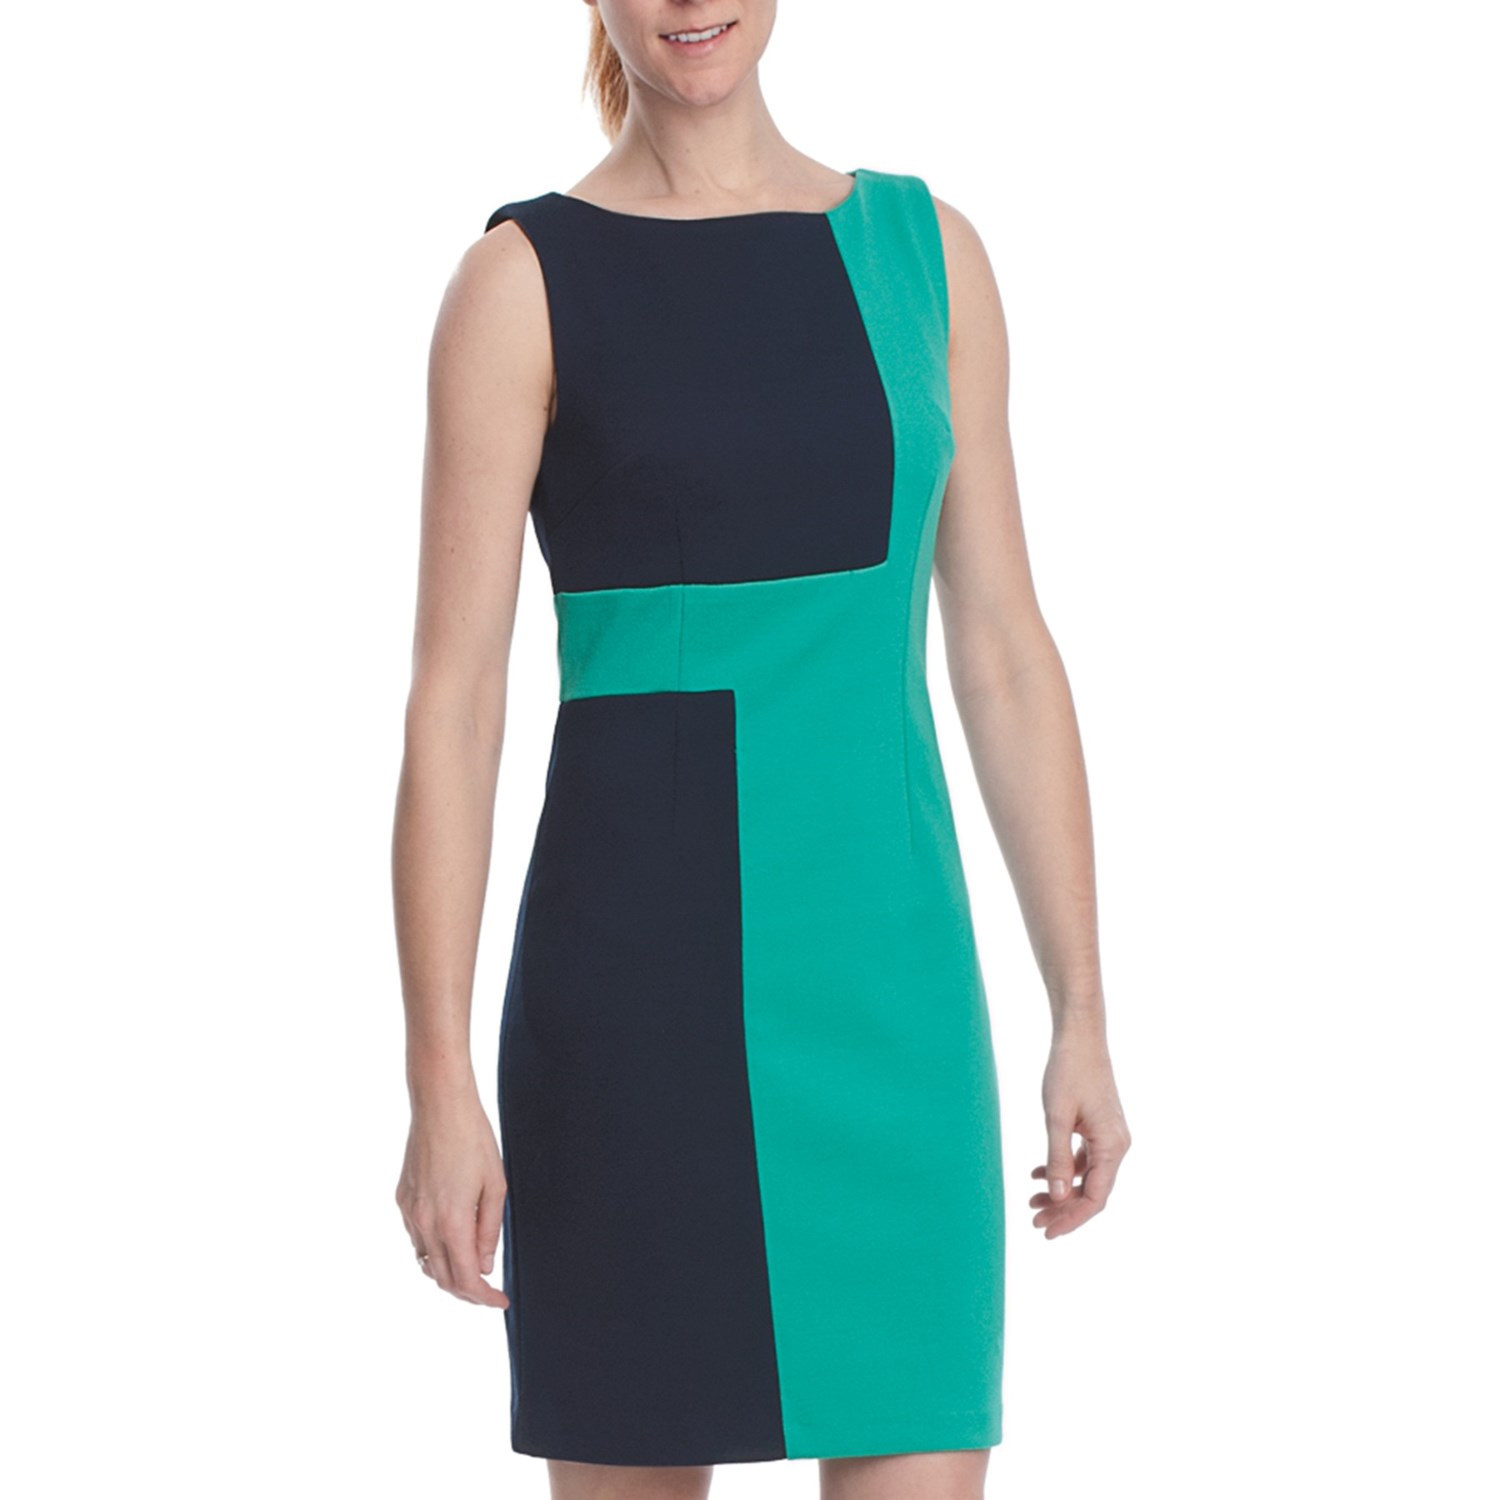 Laundry By Design Ponte Geo Color Block Dress Sleeveless